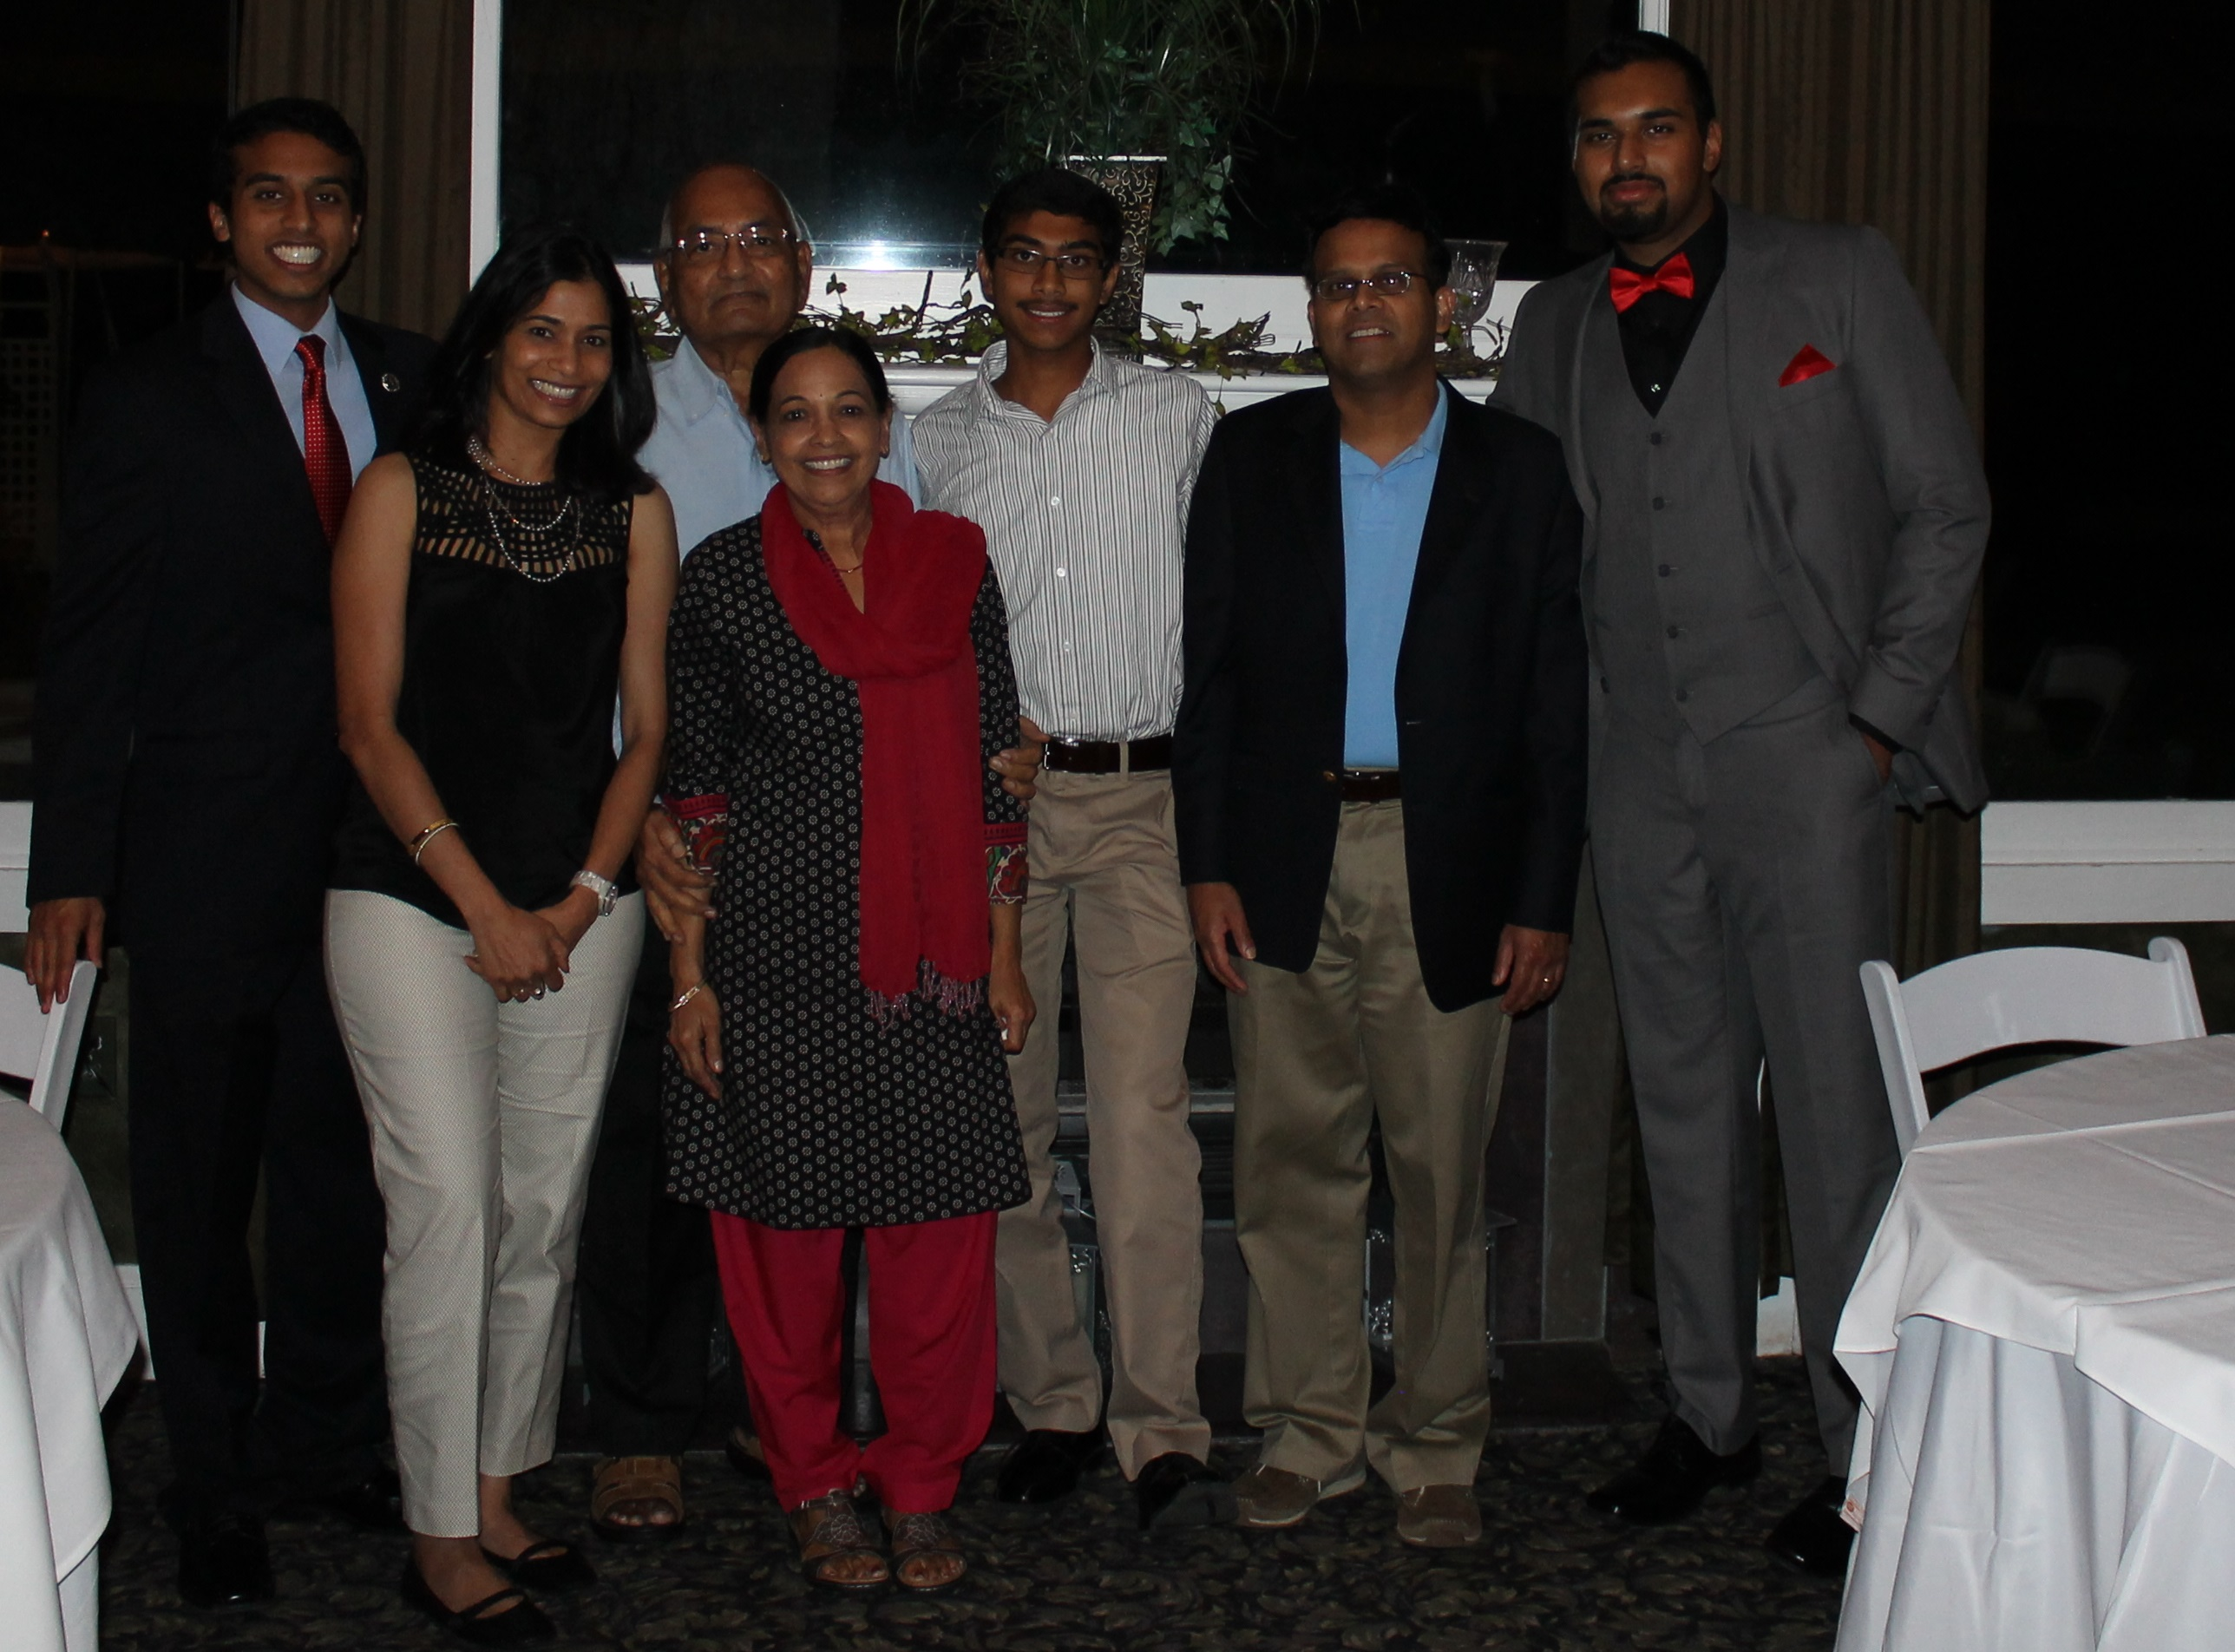 Dr. Menon and the Menon Family